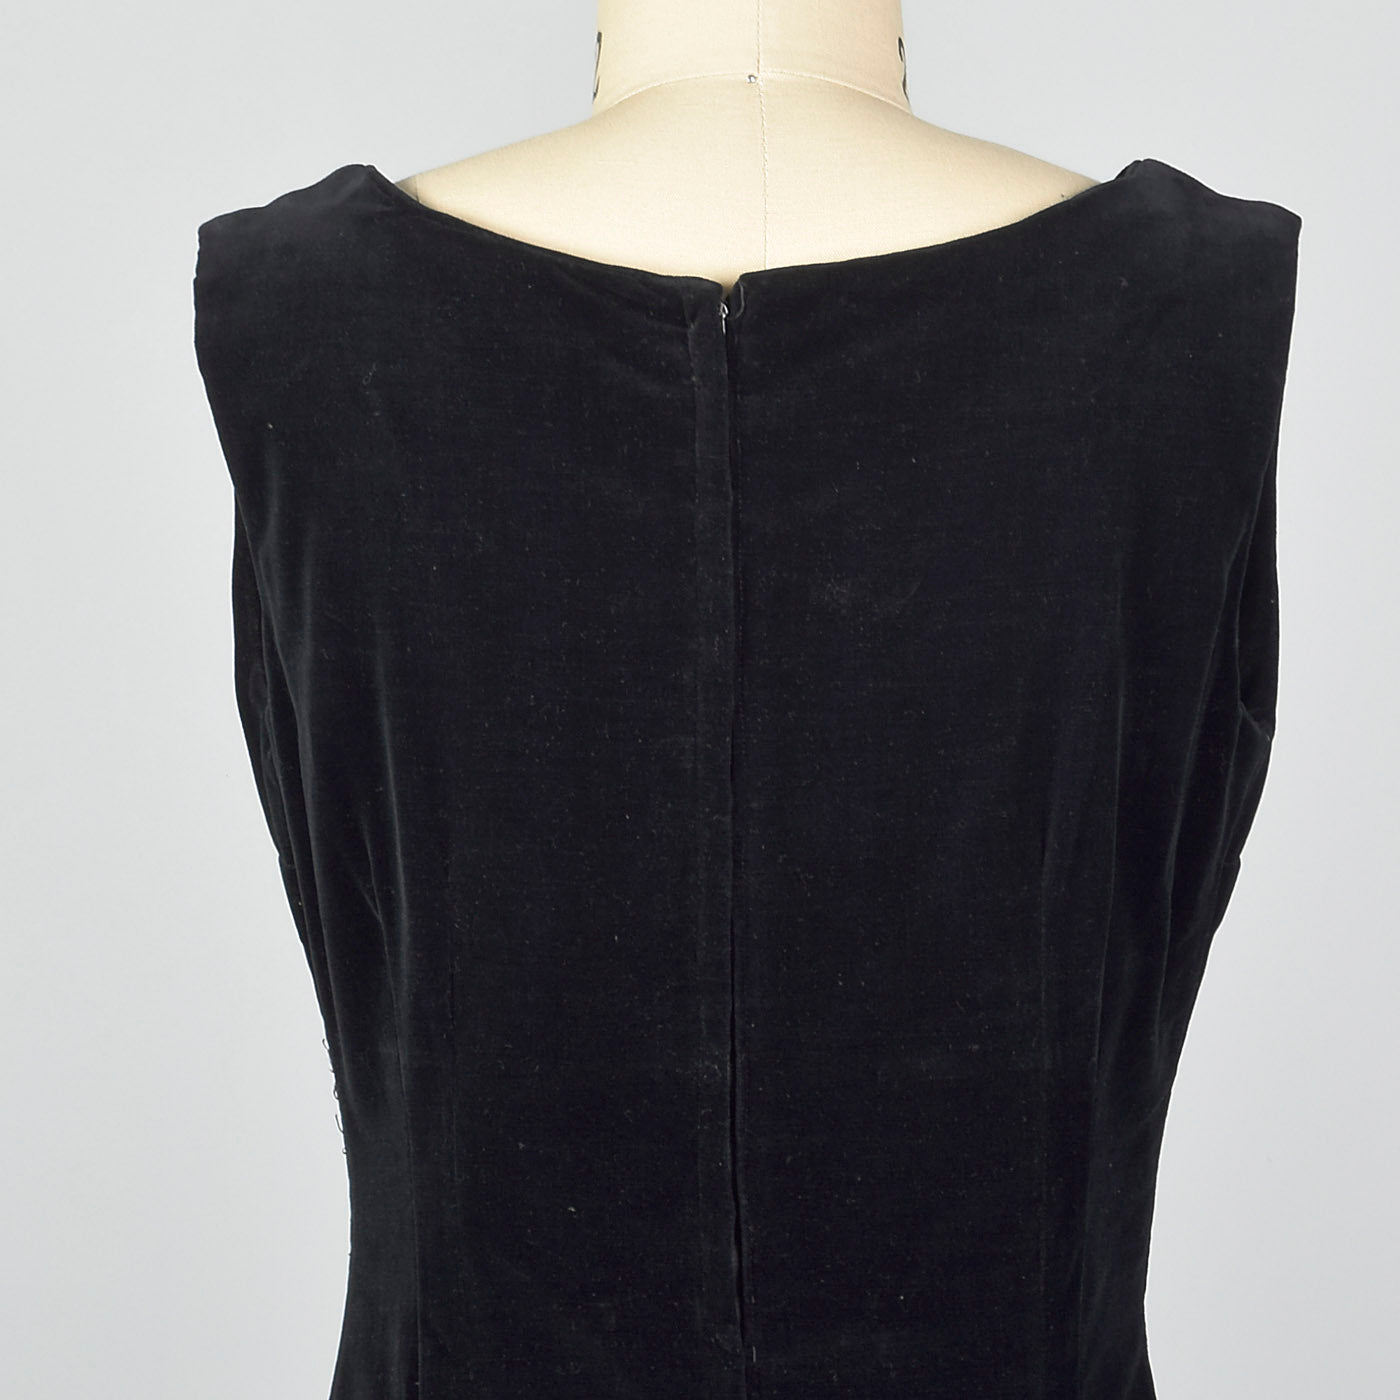 1950s Black Velvet Jumper Dress